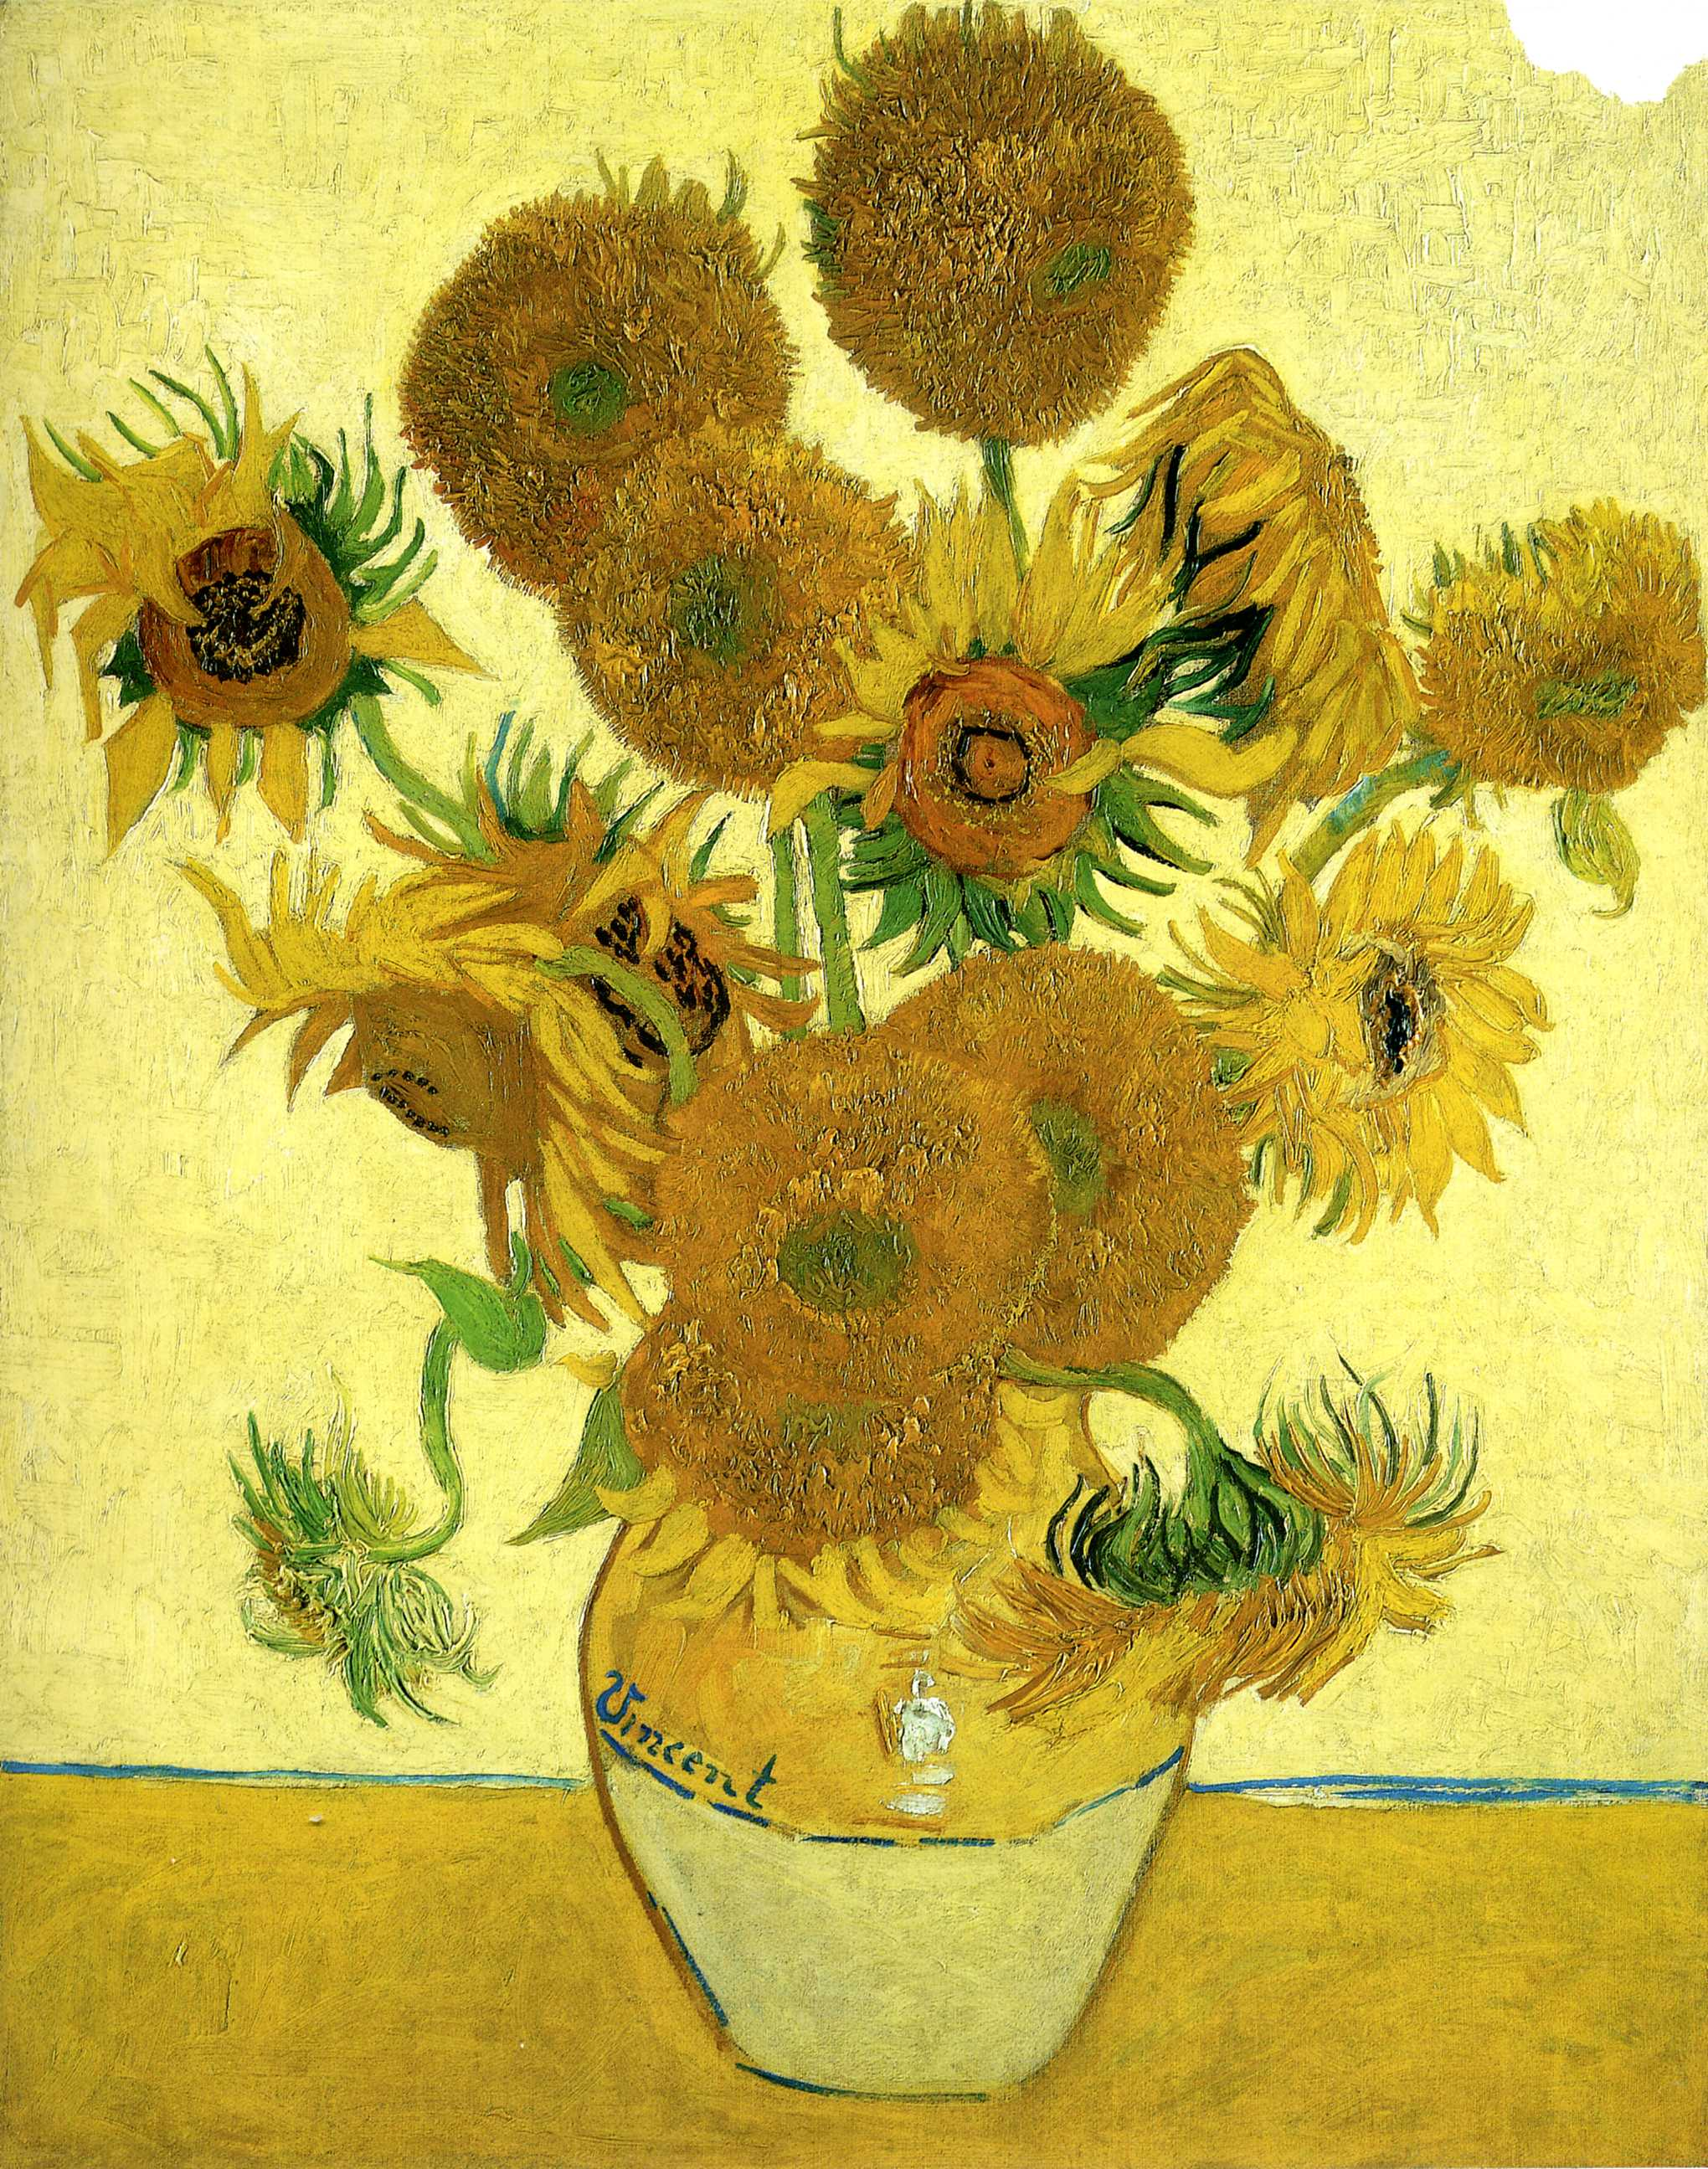 http://uploads6.wikipaintings.org/images/vincent-van-gogh/still-life-vase-with-fifteen-sunflowers-1888-1.jpg